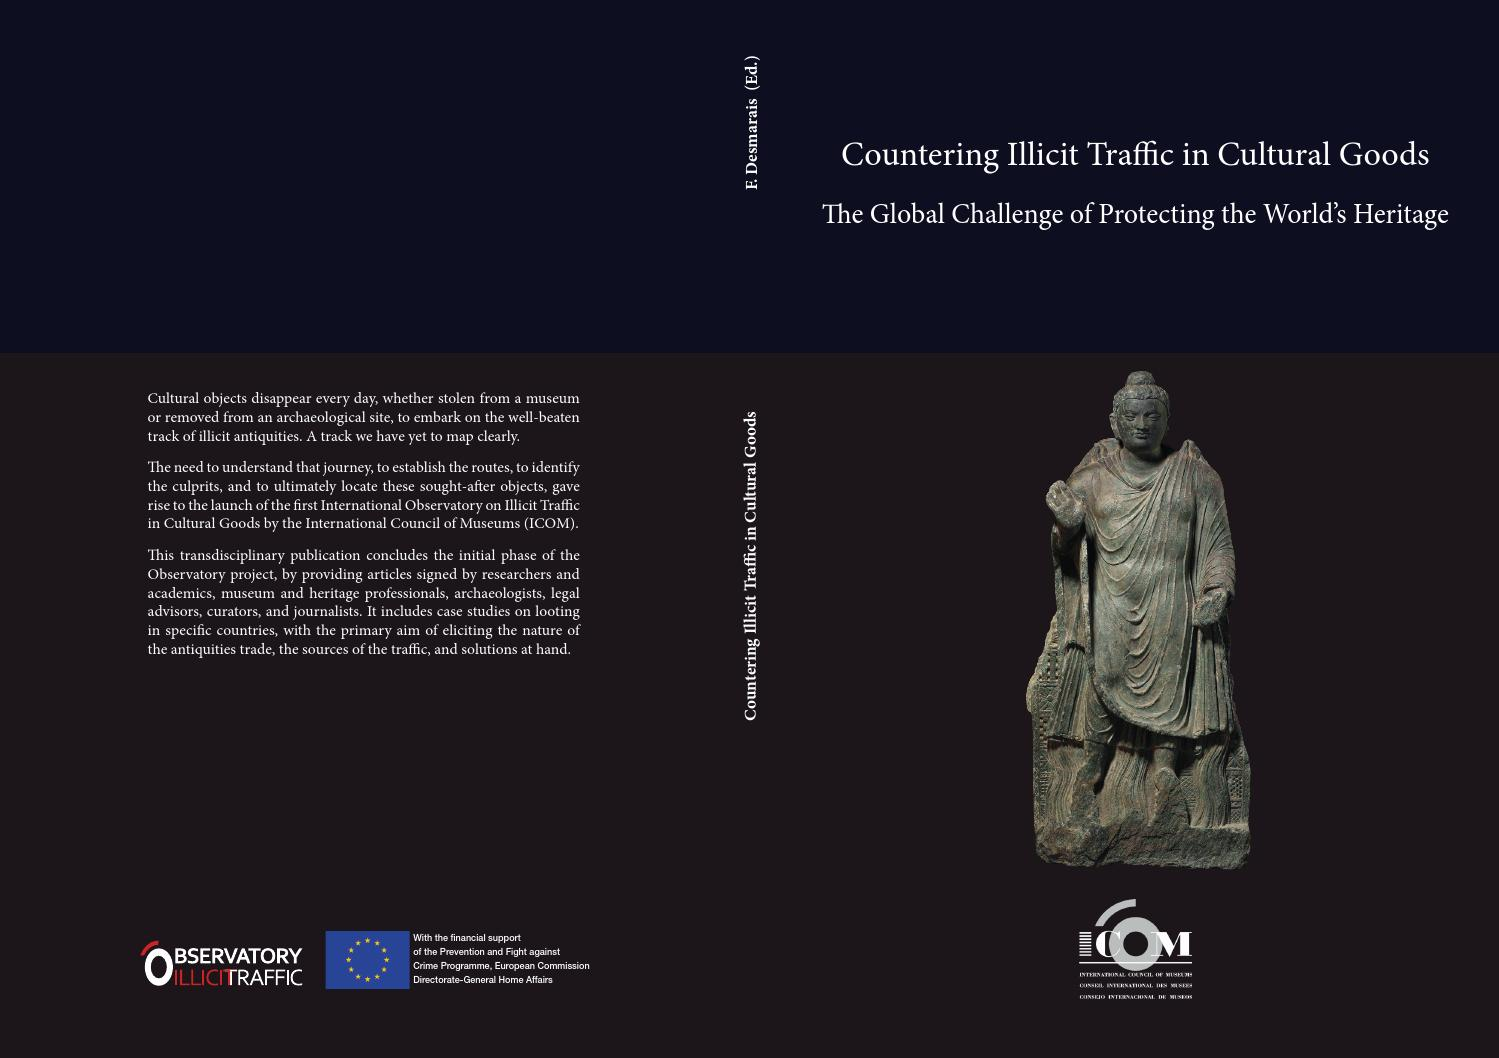 Countering Illicit Traffic in Cultural Goods The Global